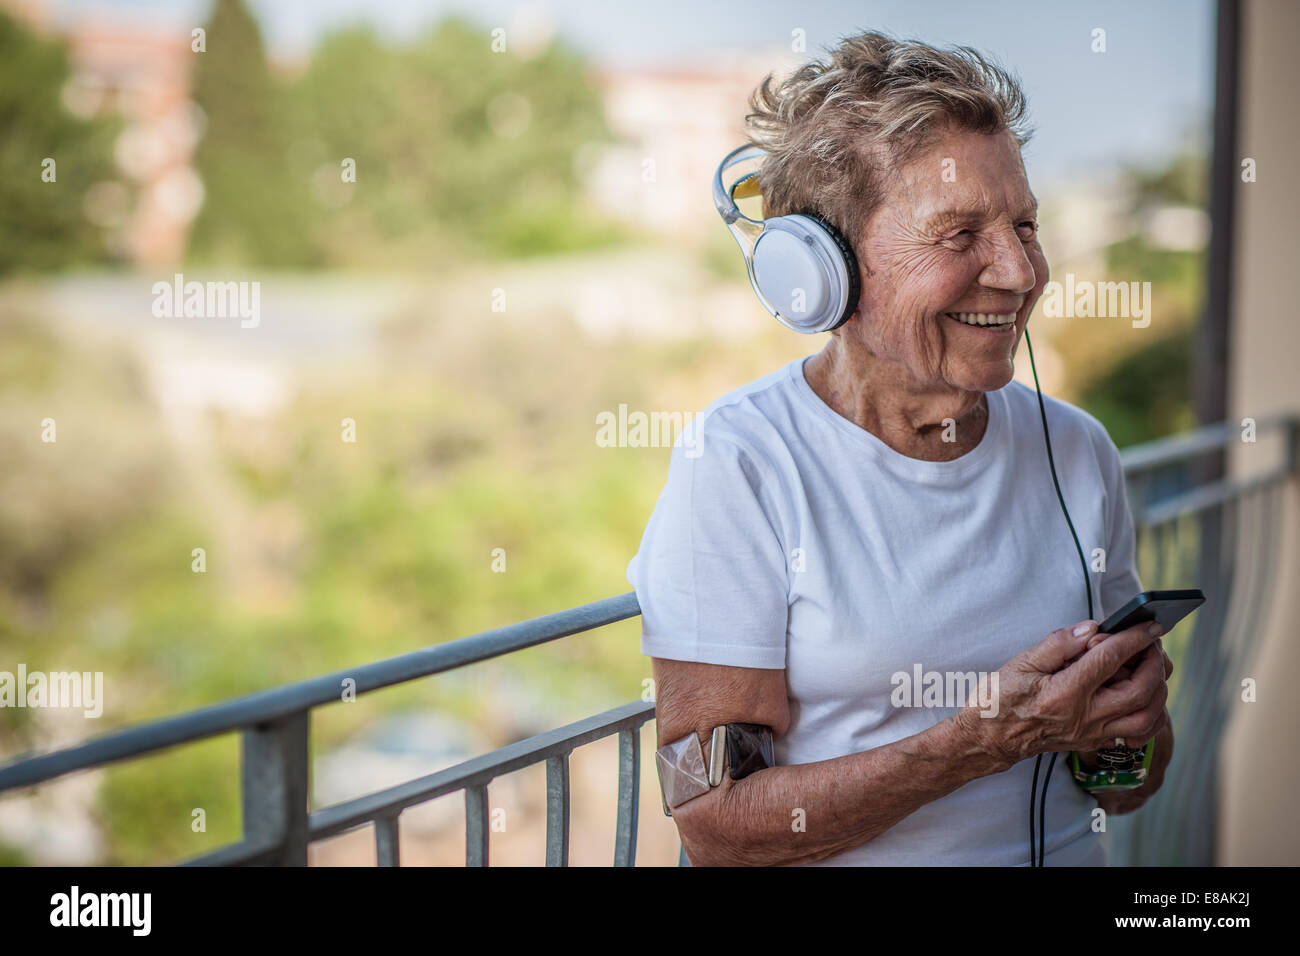 A very senior woman listening to music on headphones on apartment balcony - Stock Image